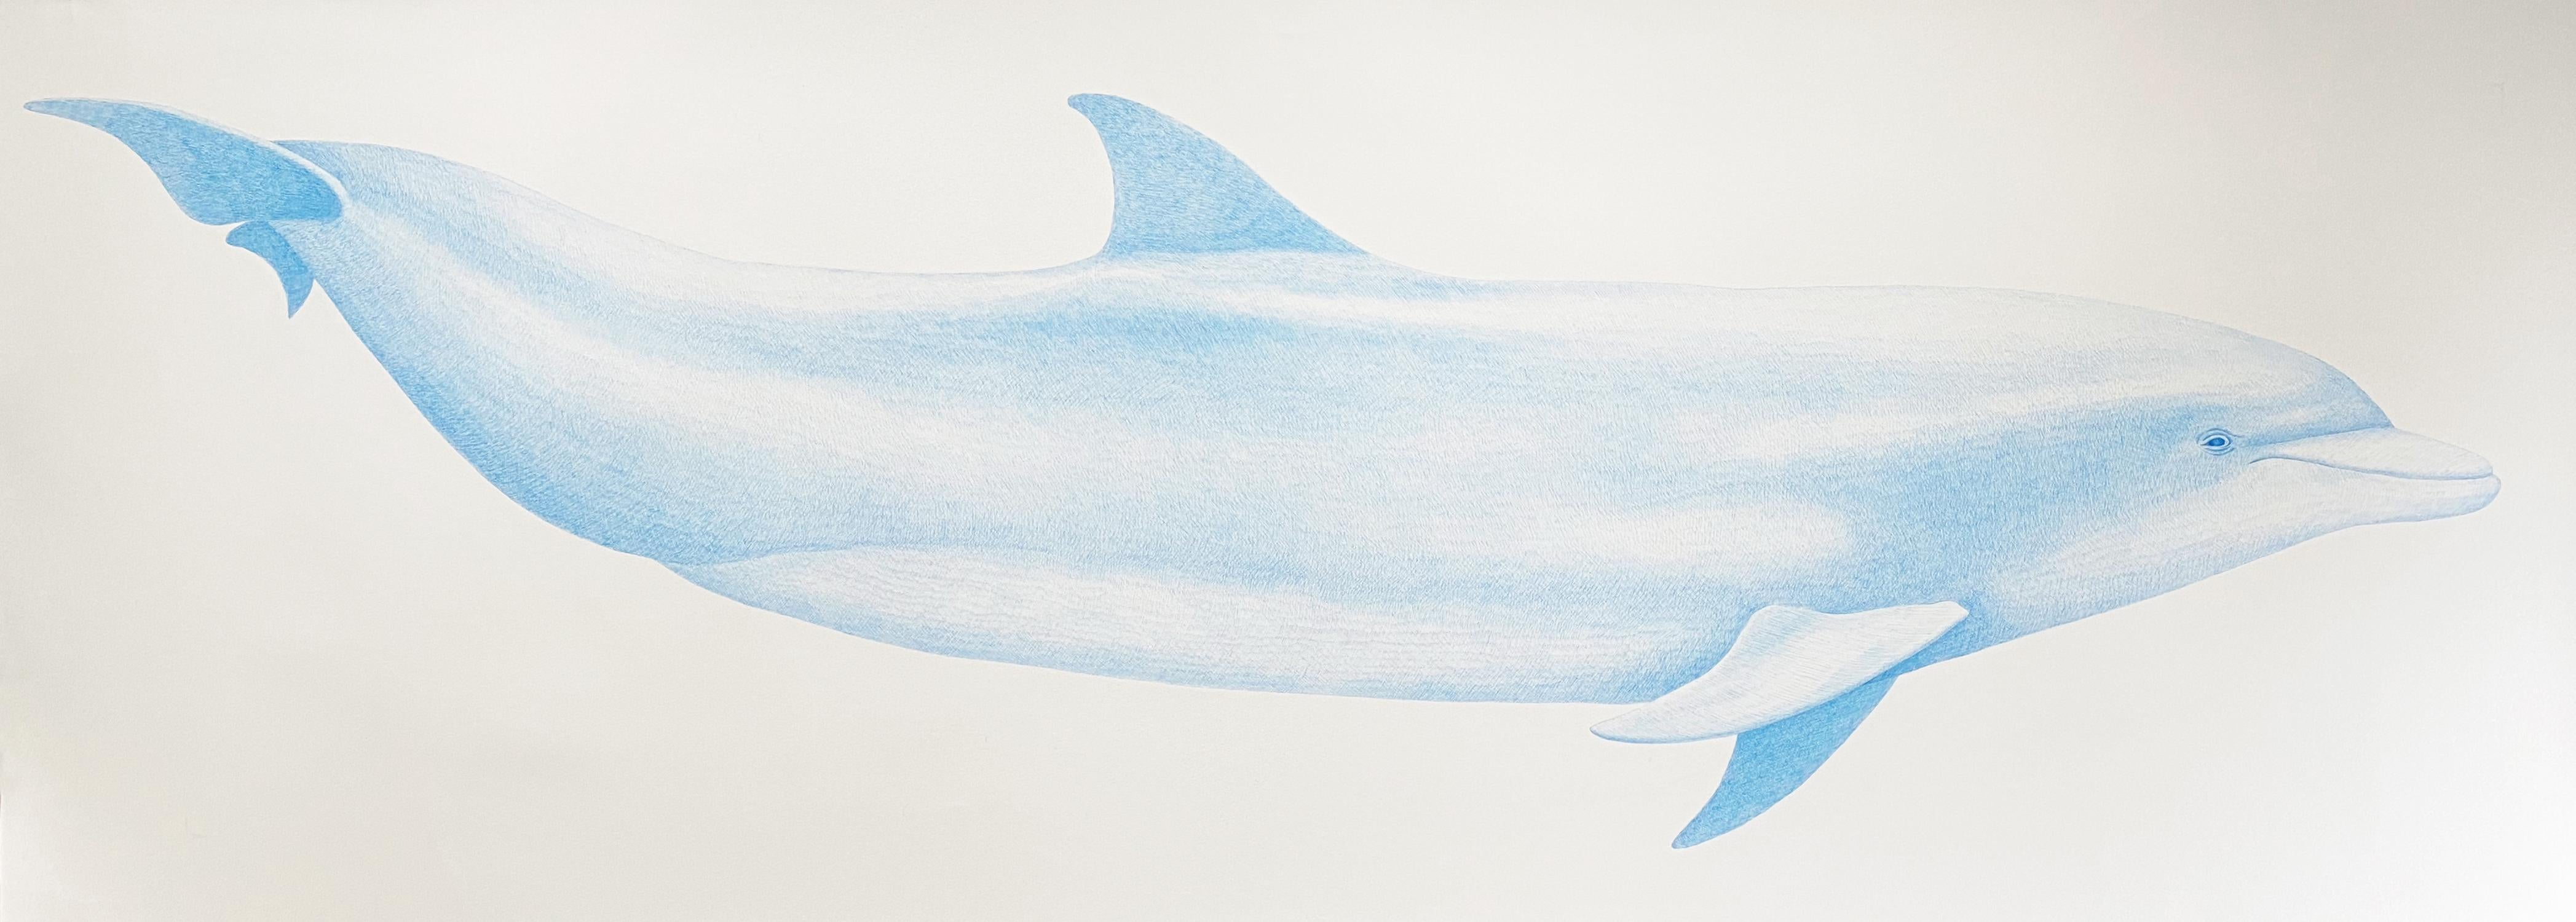 'Bottlenose Dolphin' - large-scale animal drawing - Chuck Close - Rembrandt